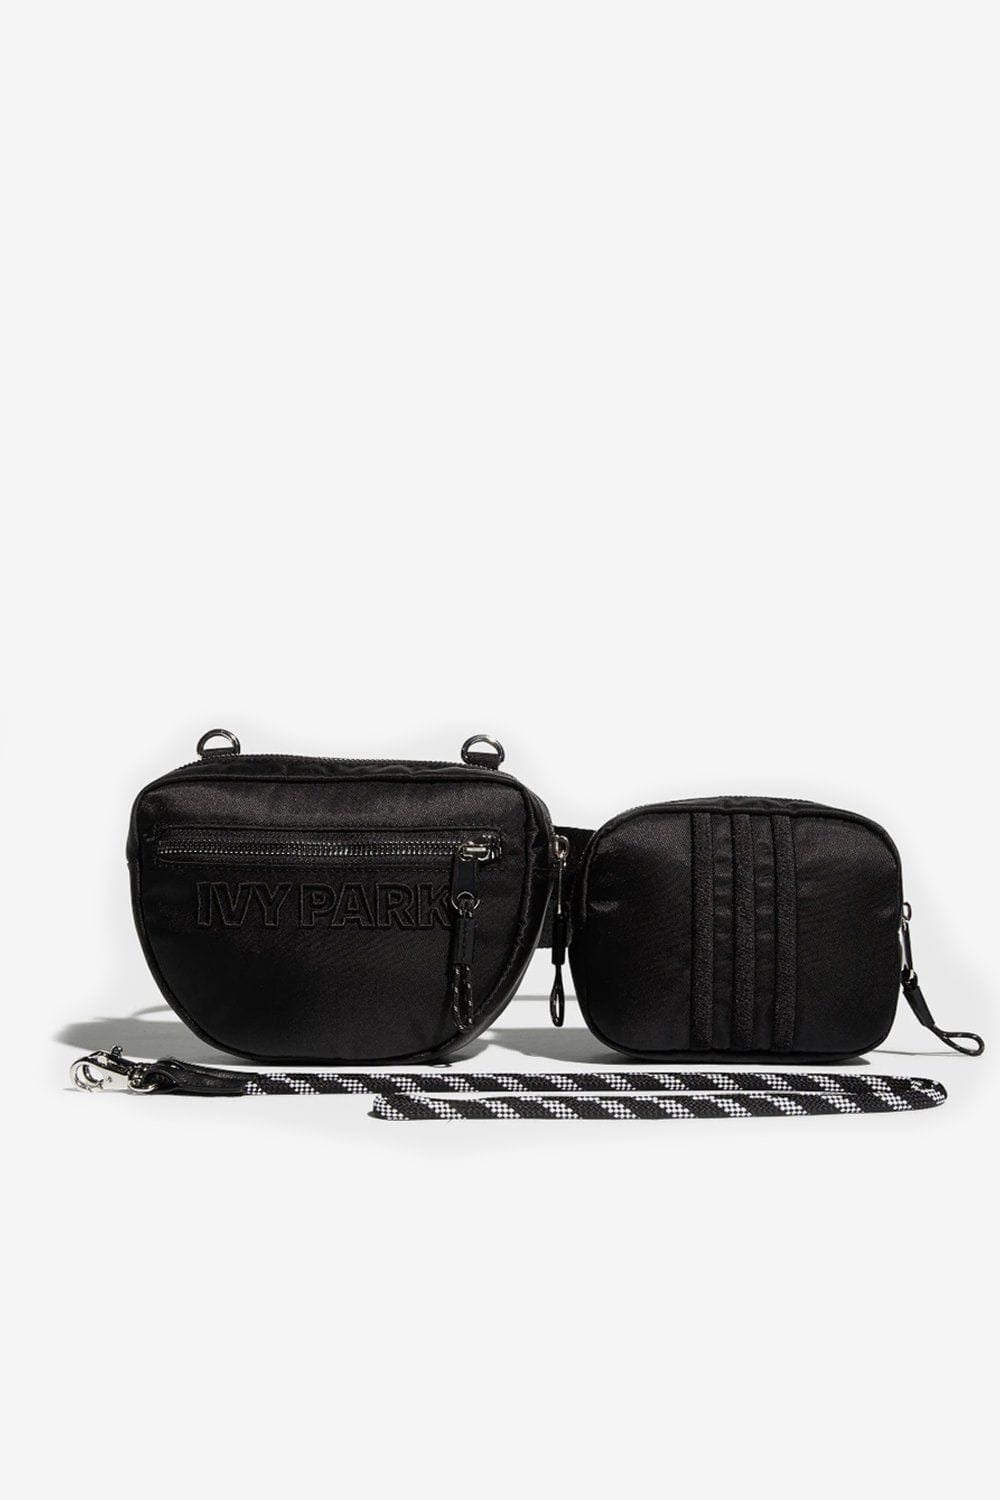 adidas Accessories OS IVY PARK x adidas Belt Bag Black